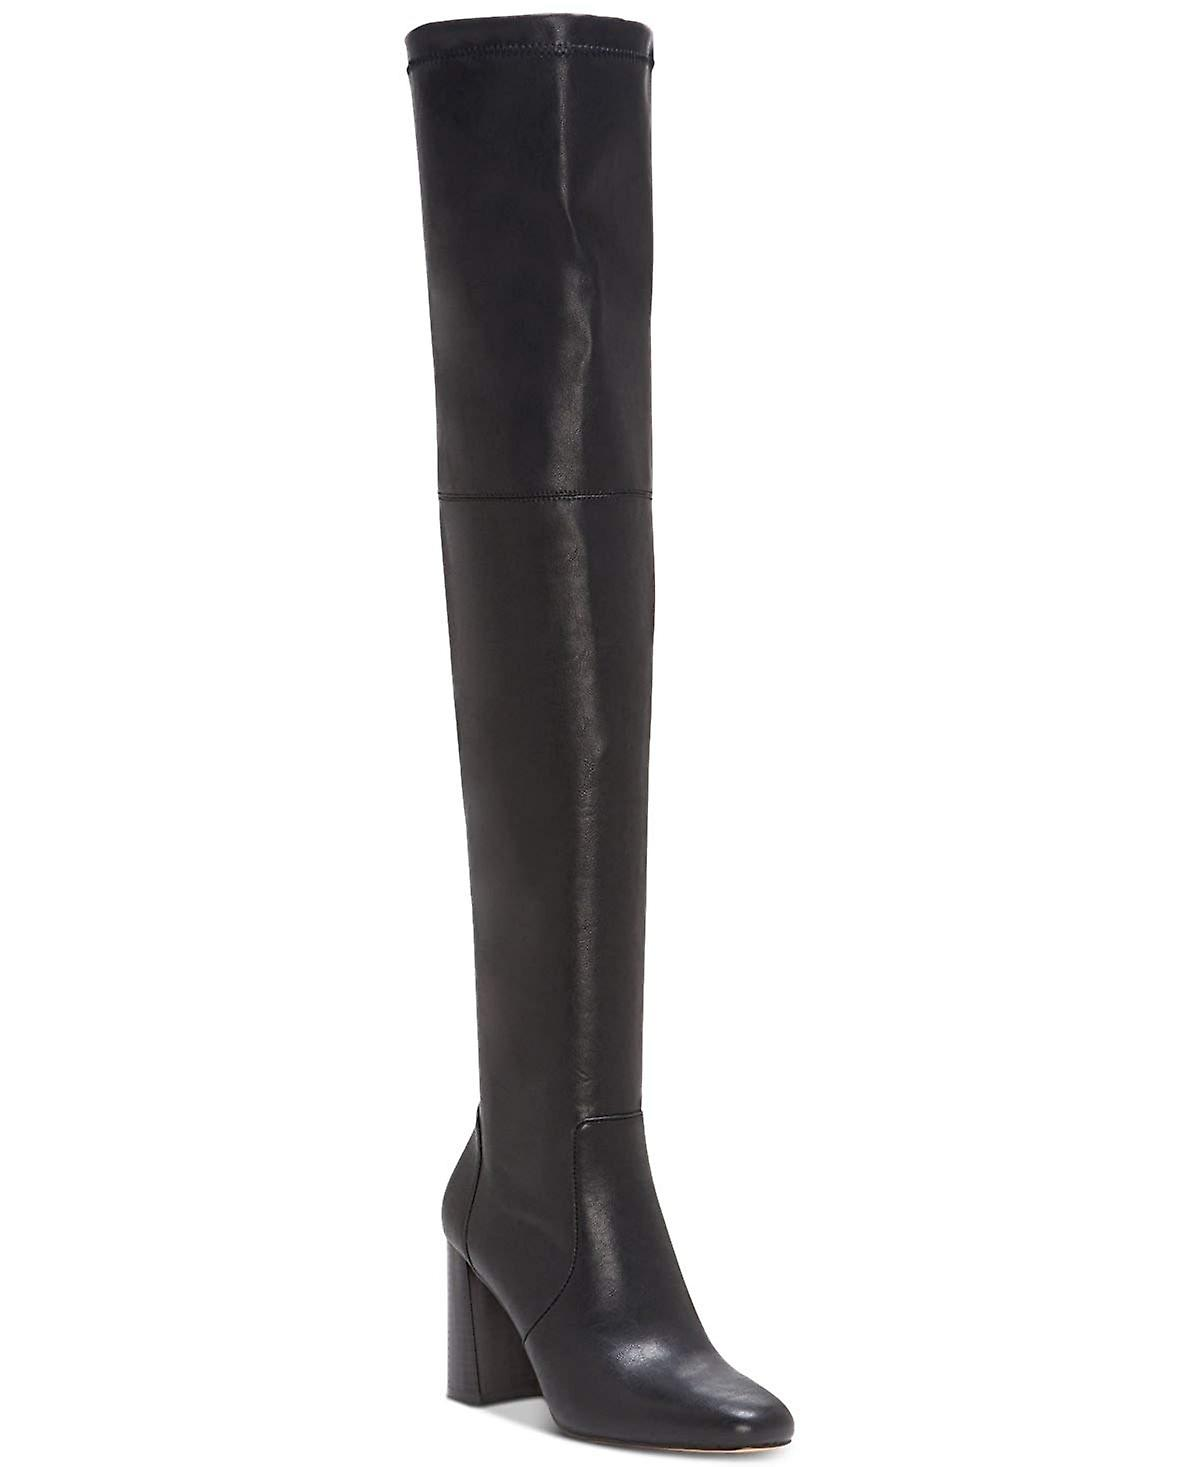 Inc International Concepts Womens Delisa Round Toe Over Knee Fashion Boots